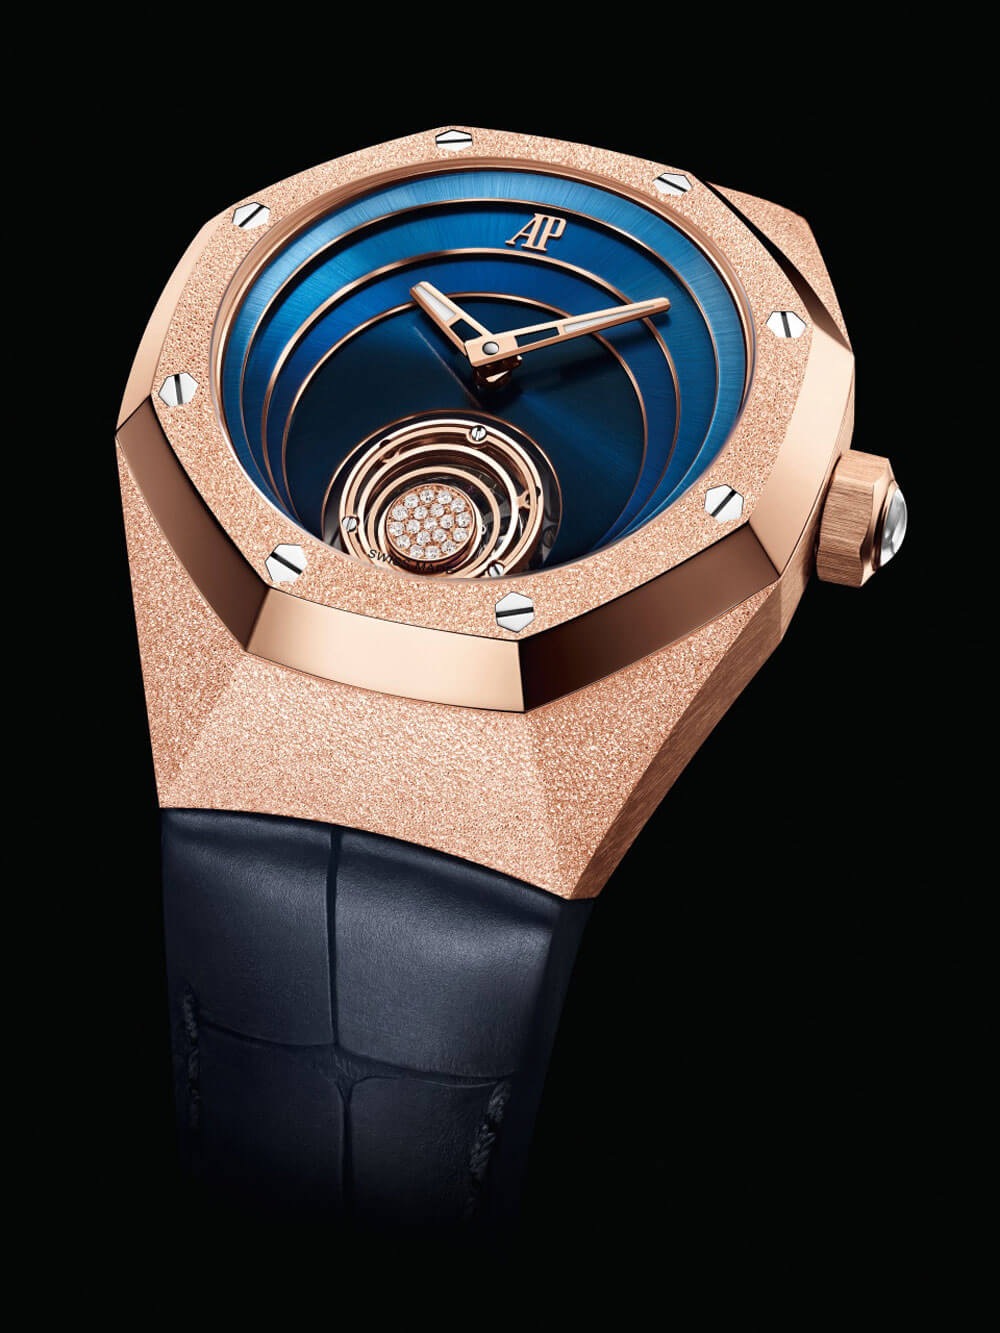 Audemars Piguet Royal Oak Concept Frosted Rose Gold Flying Tourbillon Watch Face